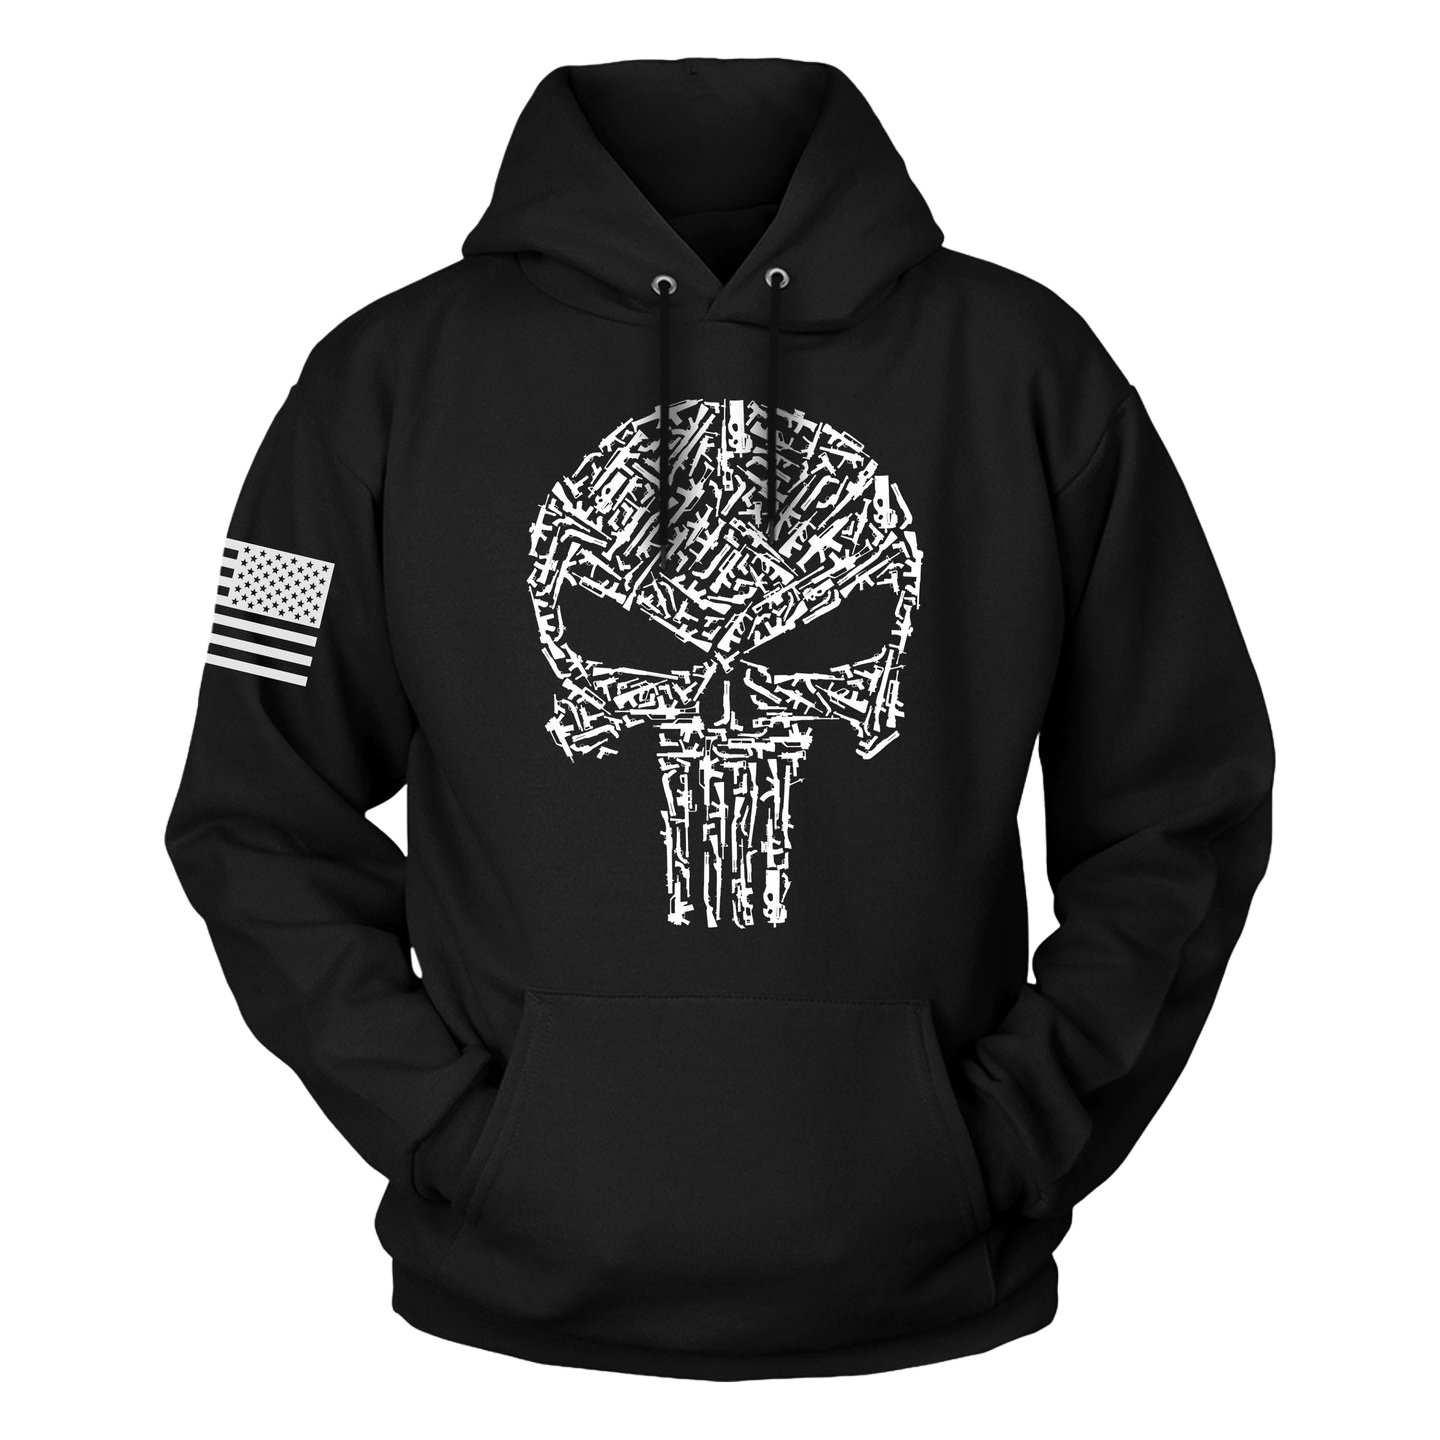 Hoodies - The Gunisher | Hoodie